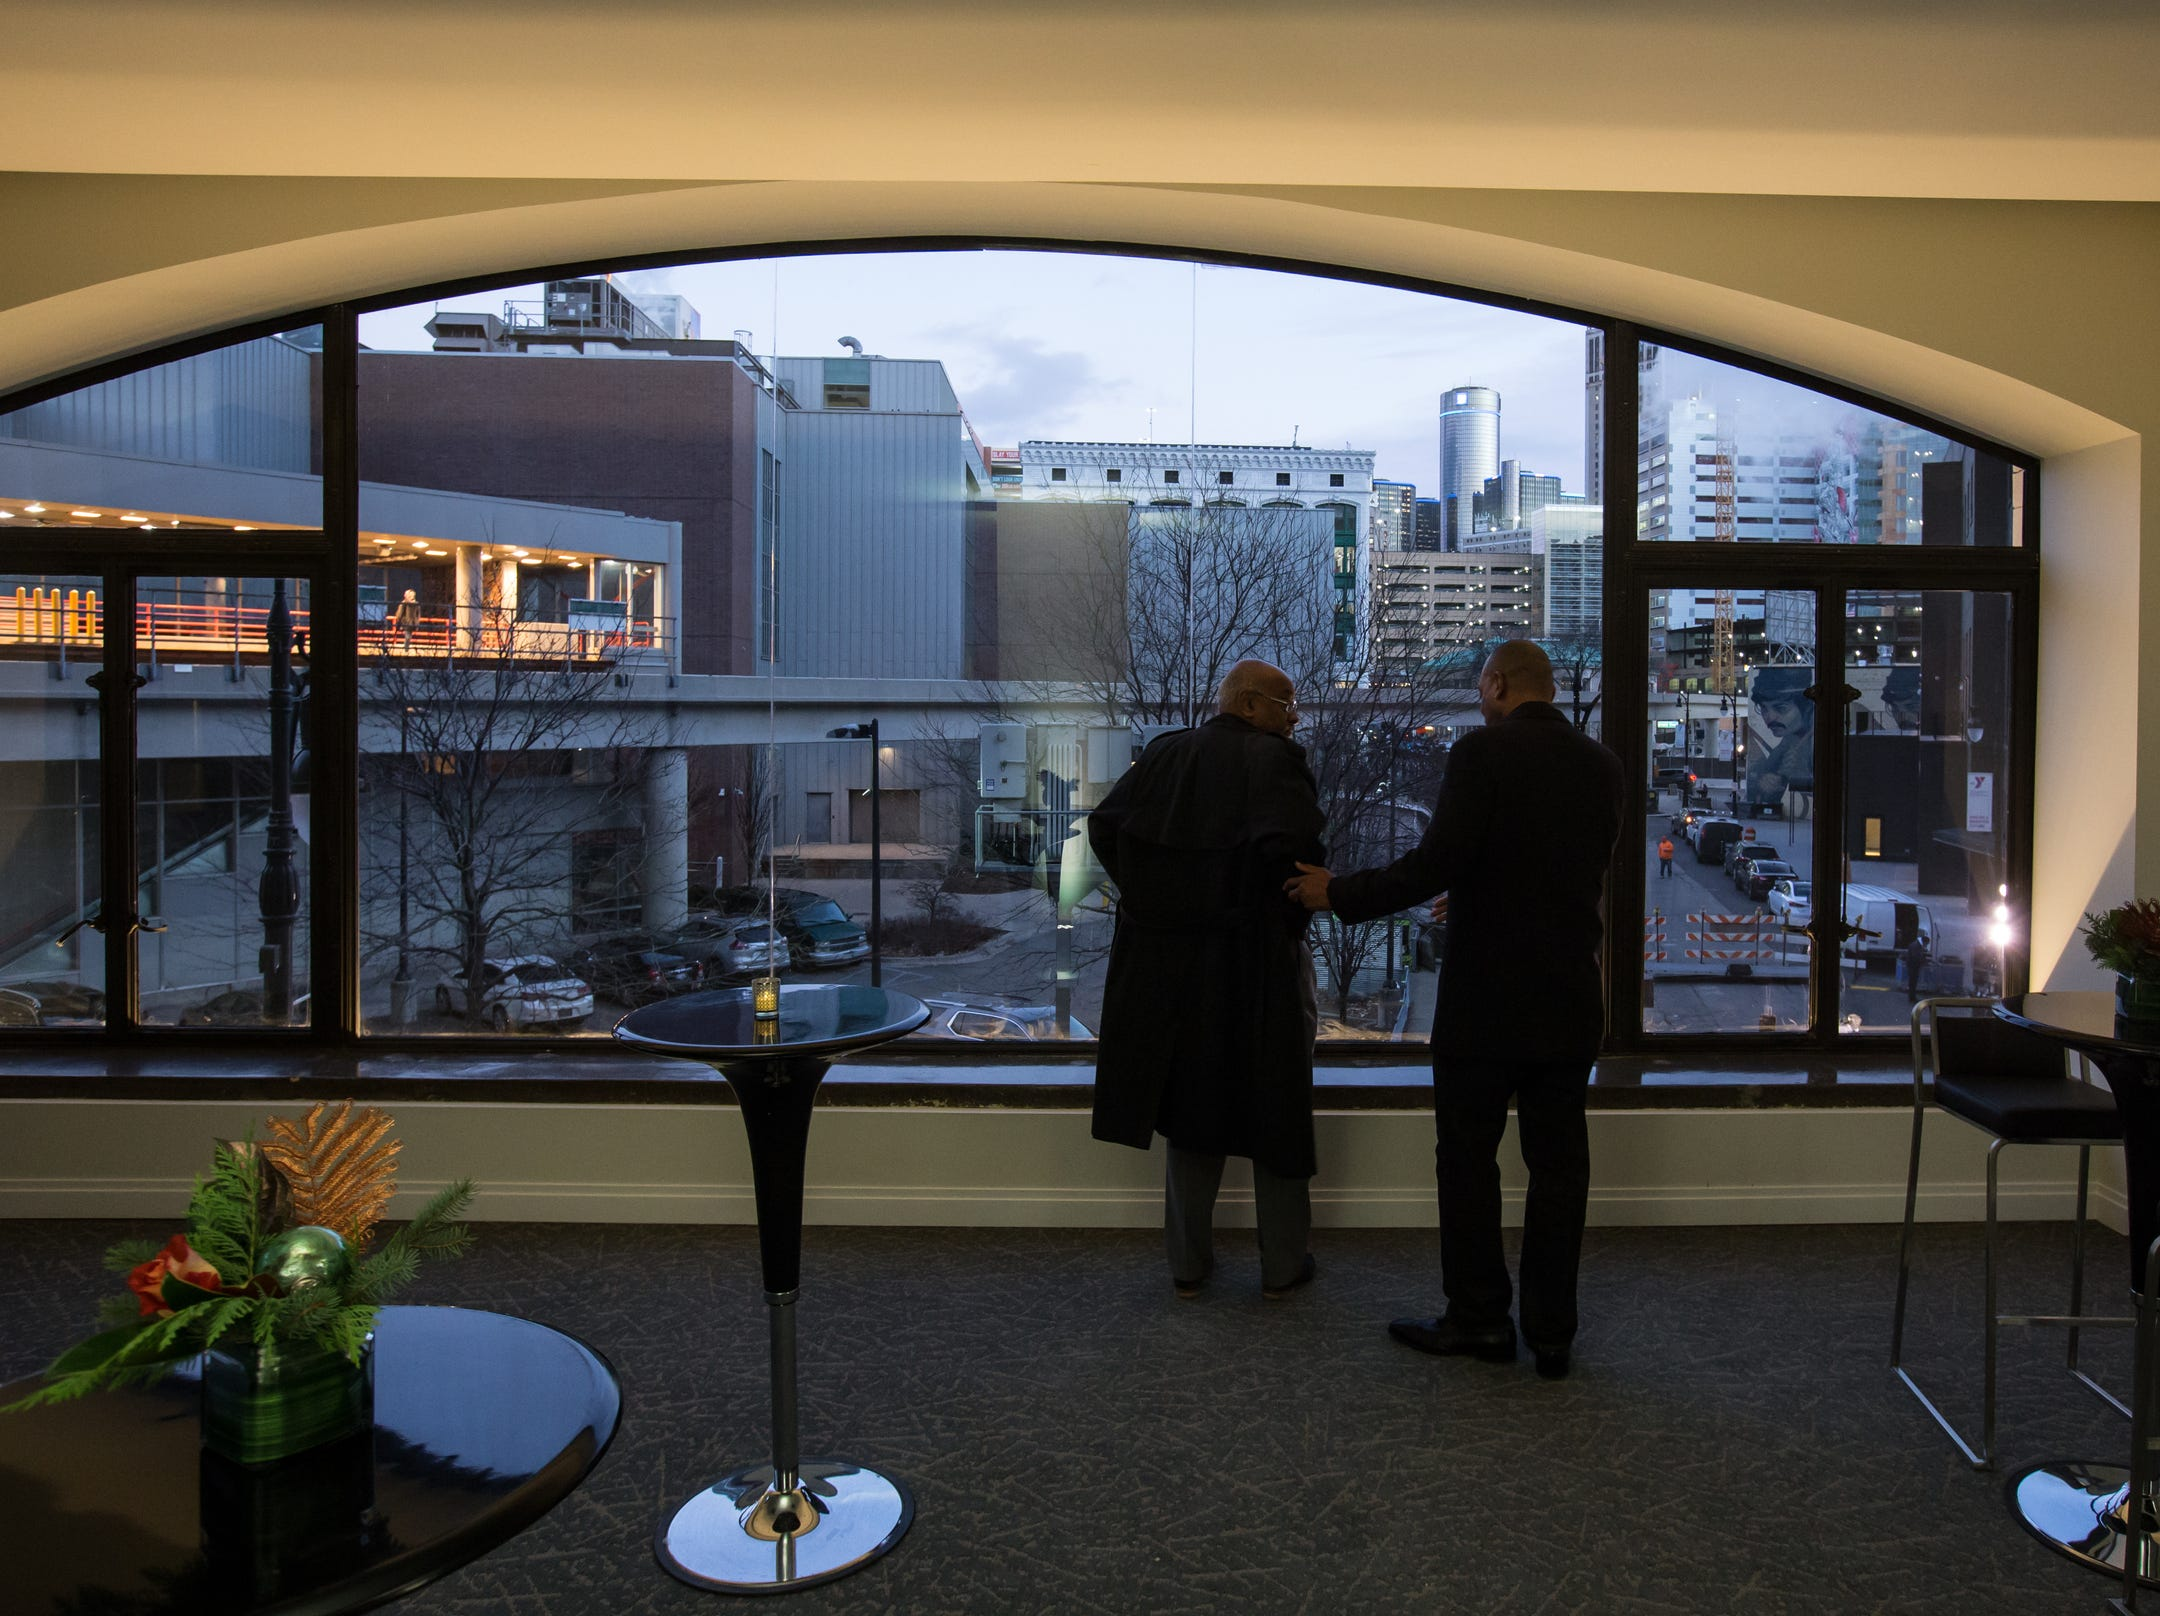 People get a view of downtown Detroit from a room in the fully restored Great Hall of the historic Metropolitan Building in downtown Detroit on Monday, December 17, 2018 after a public dedication of the building. The renovation of skyscraper will include retail, restaurants and Michigan's first Element Hotel.